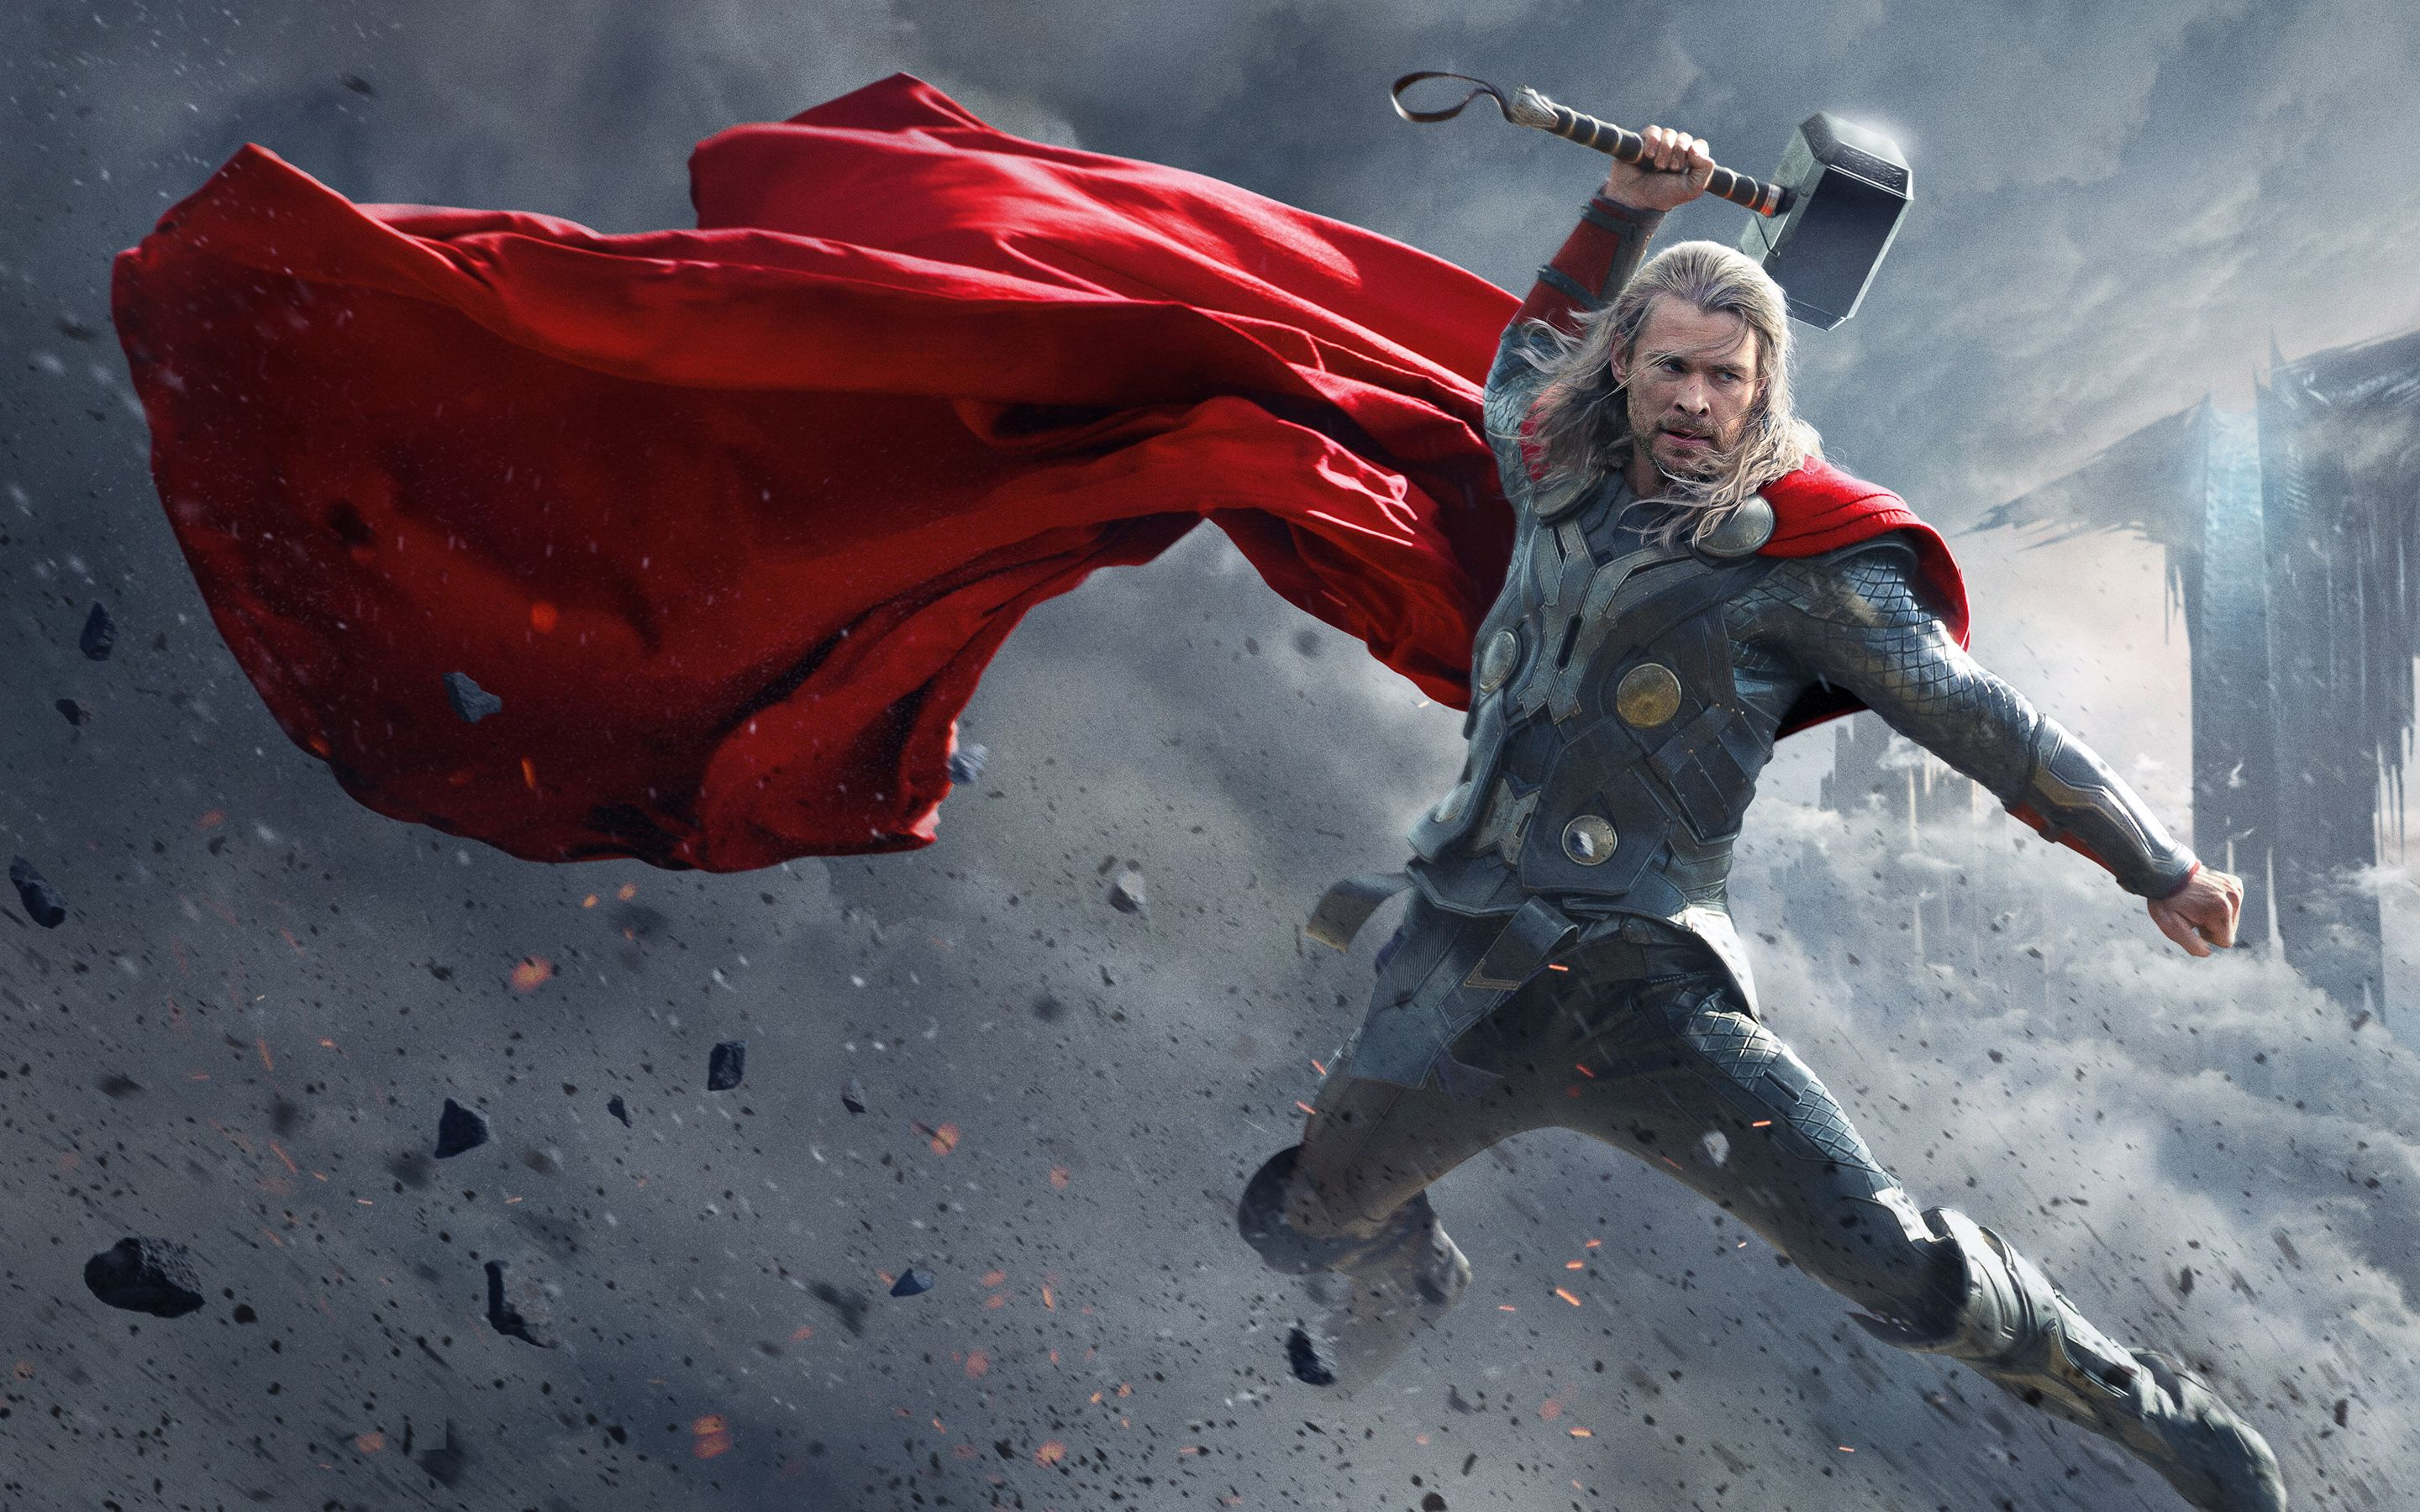 4K Thor Wallpapers - Top Free 4K Thor Backgrounds